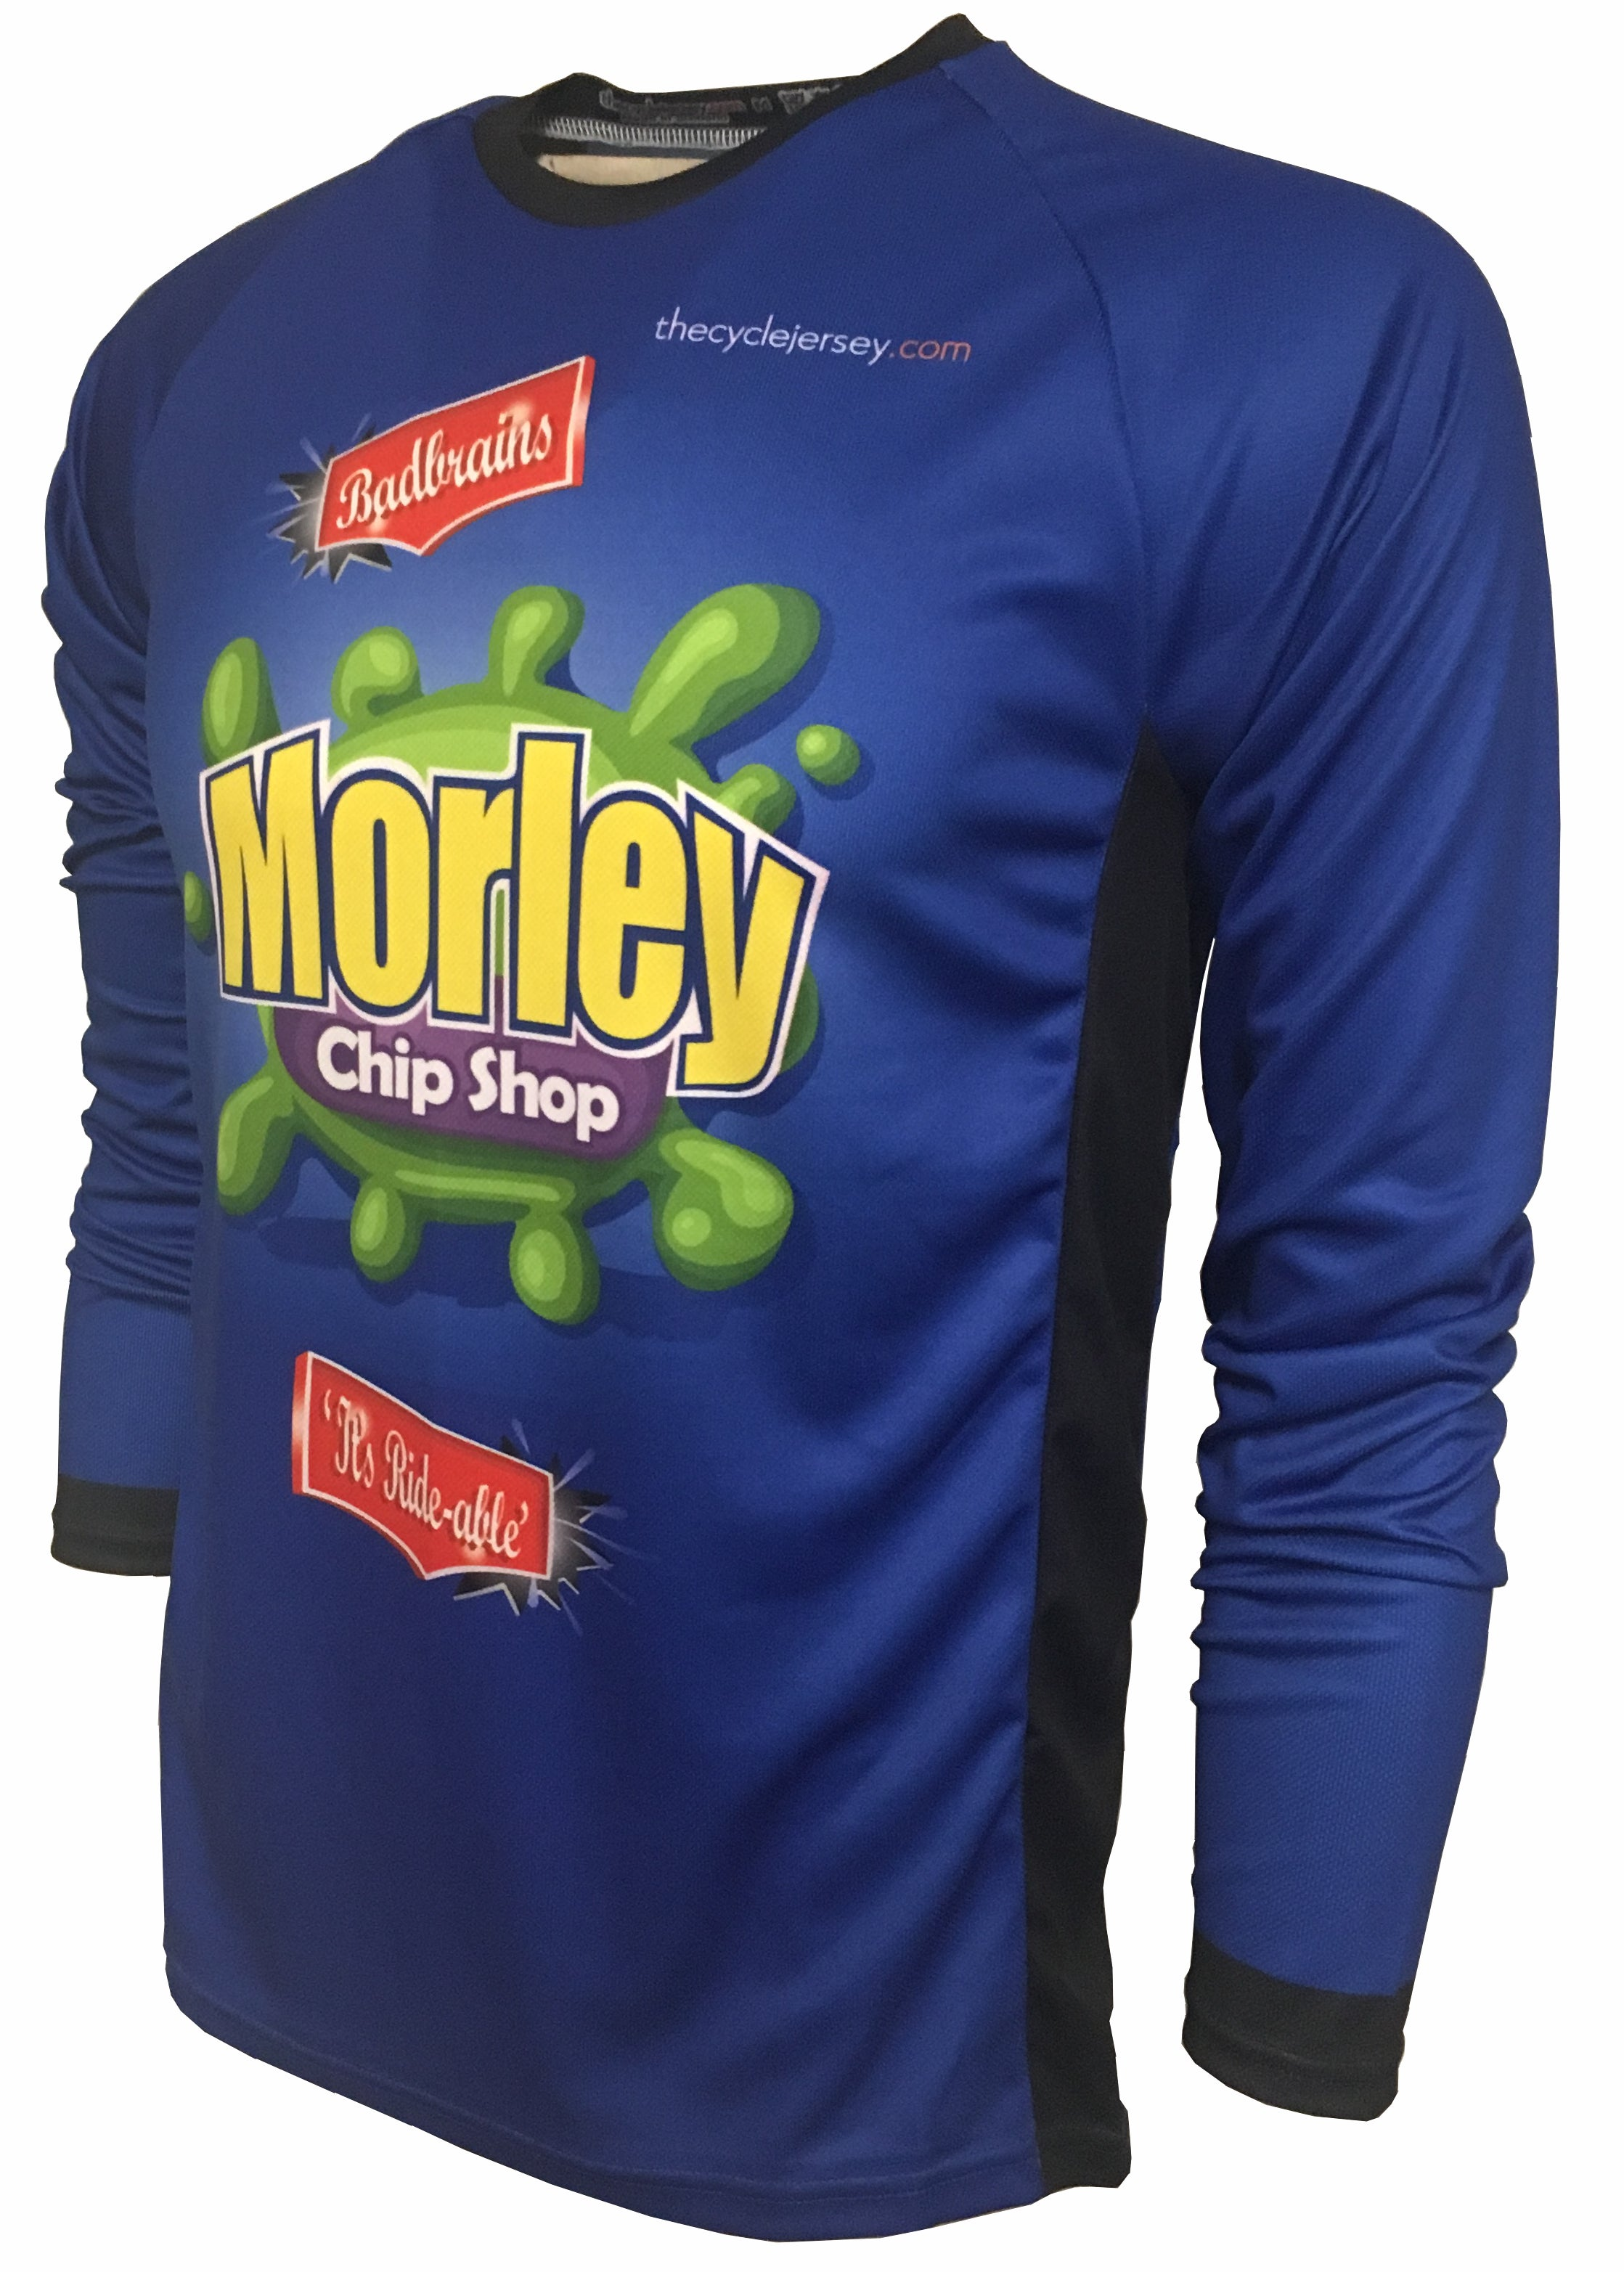 Morley Chip Shop Kids Enduro Cycle Jersey Front